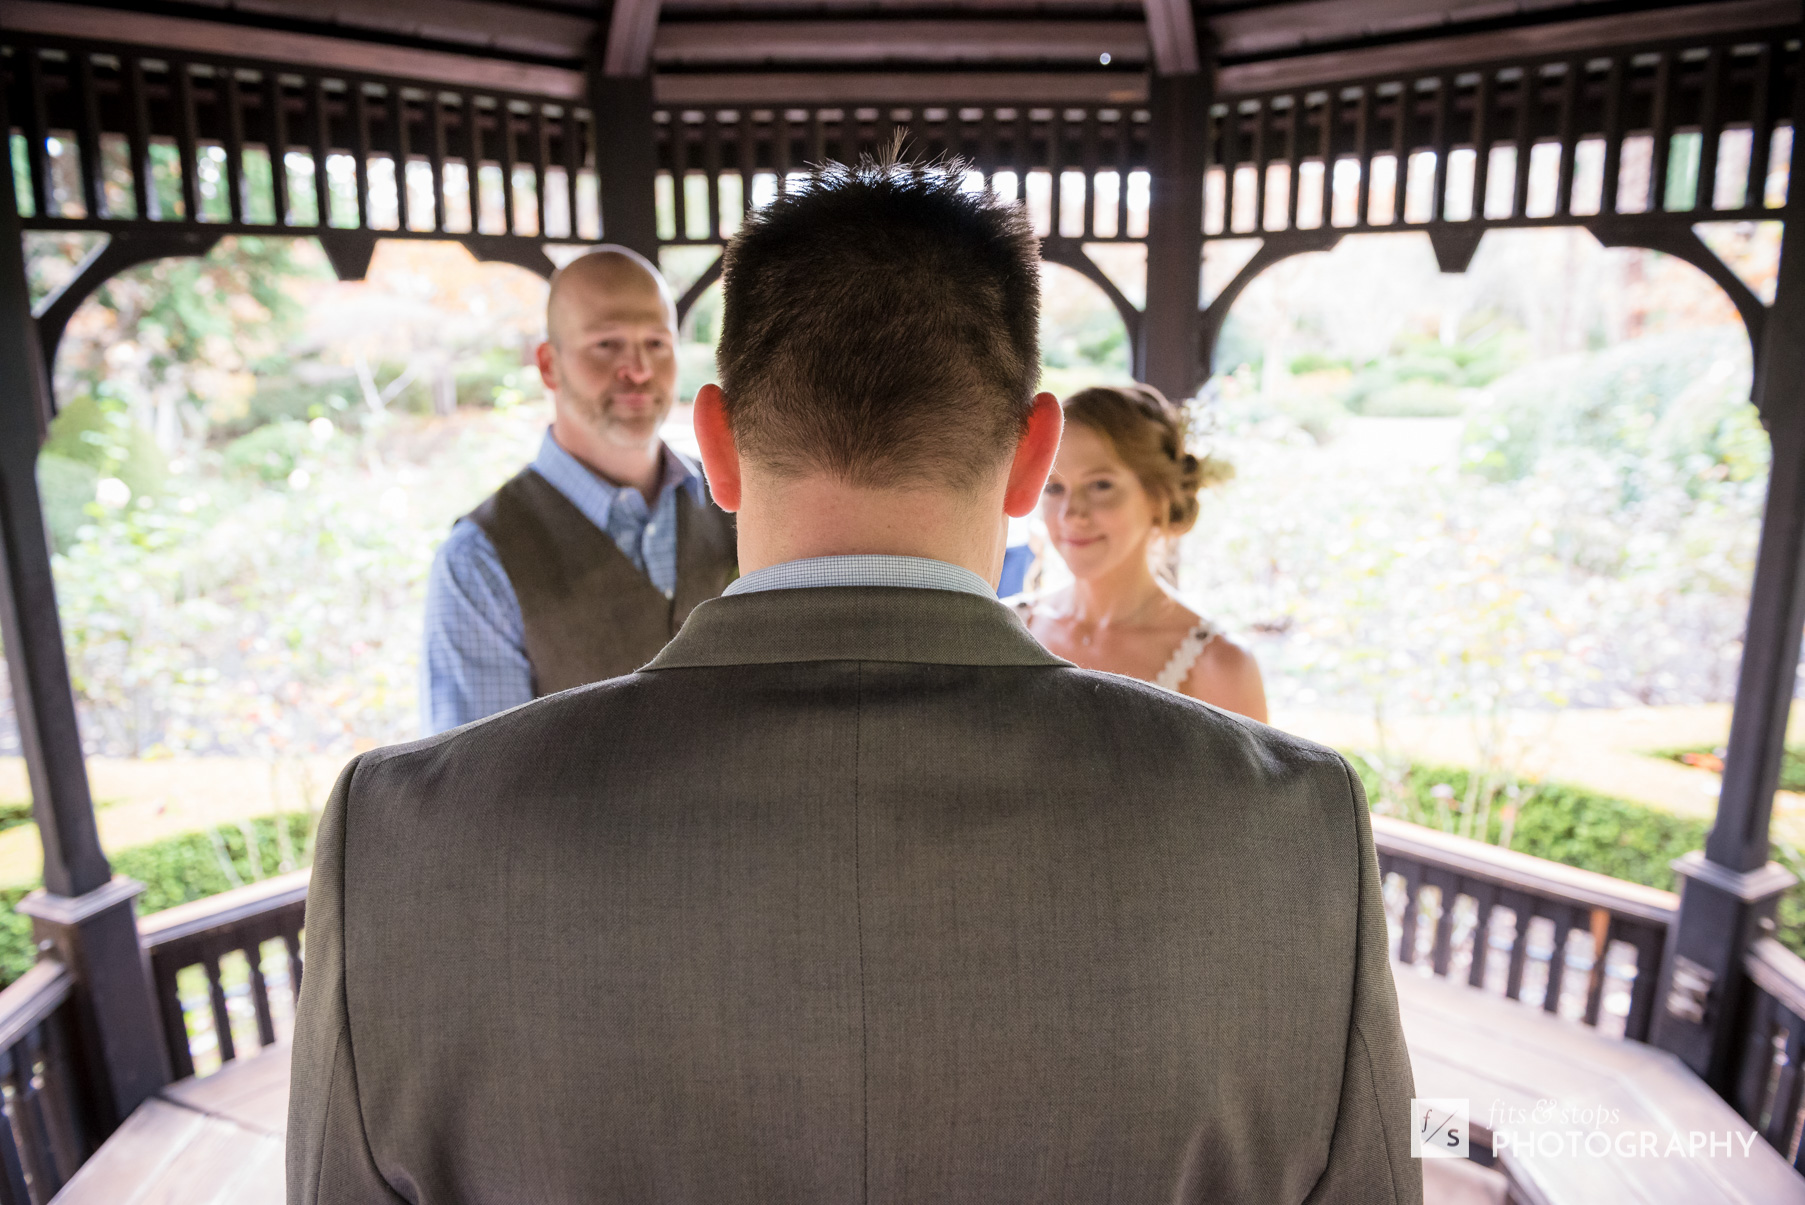 A pastor dressed in a sport coat officiates a wedding ceremony for a young, Caucasian bride and groom, set in a garden gazebo.